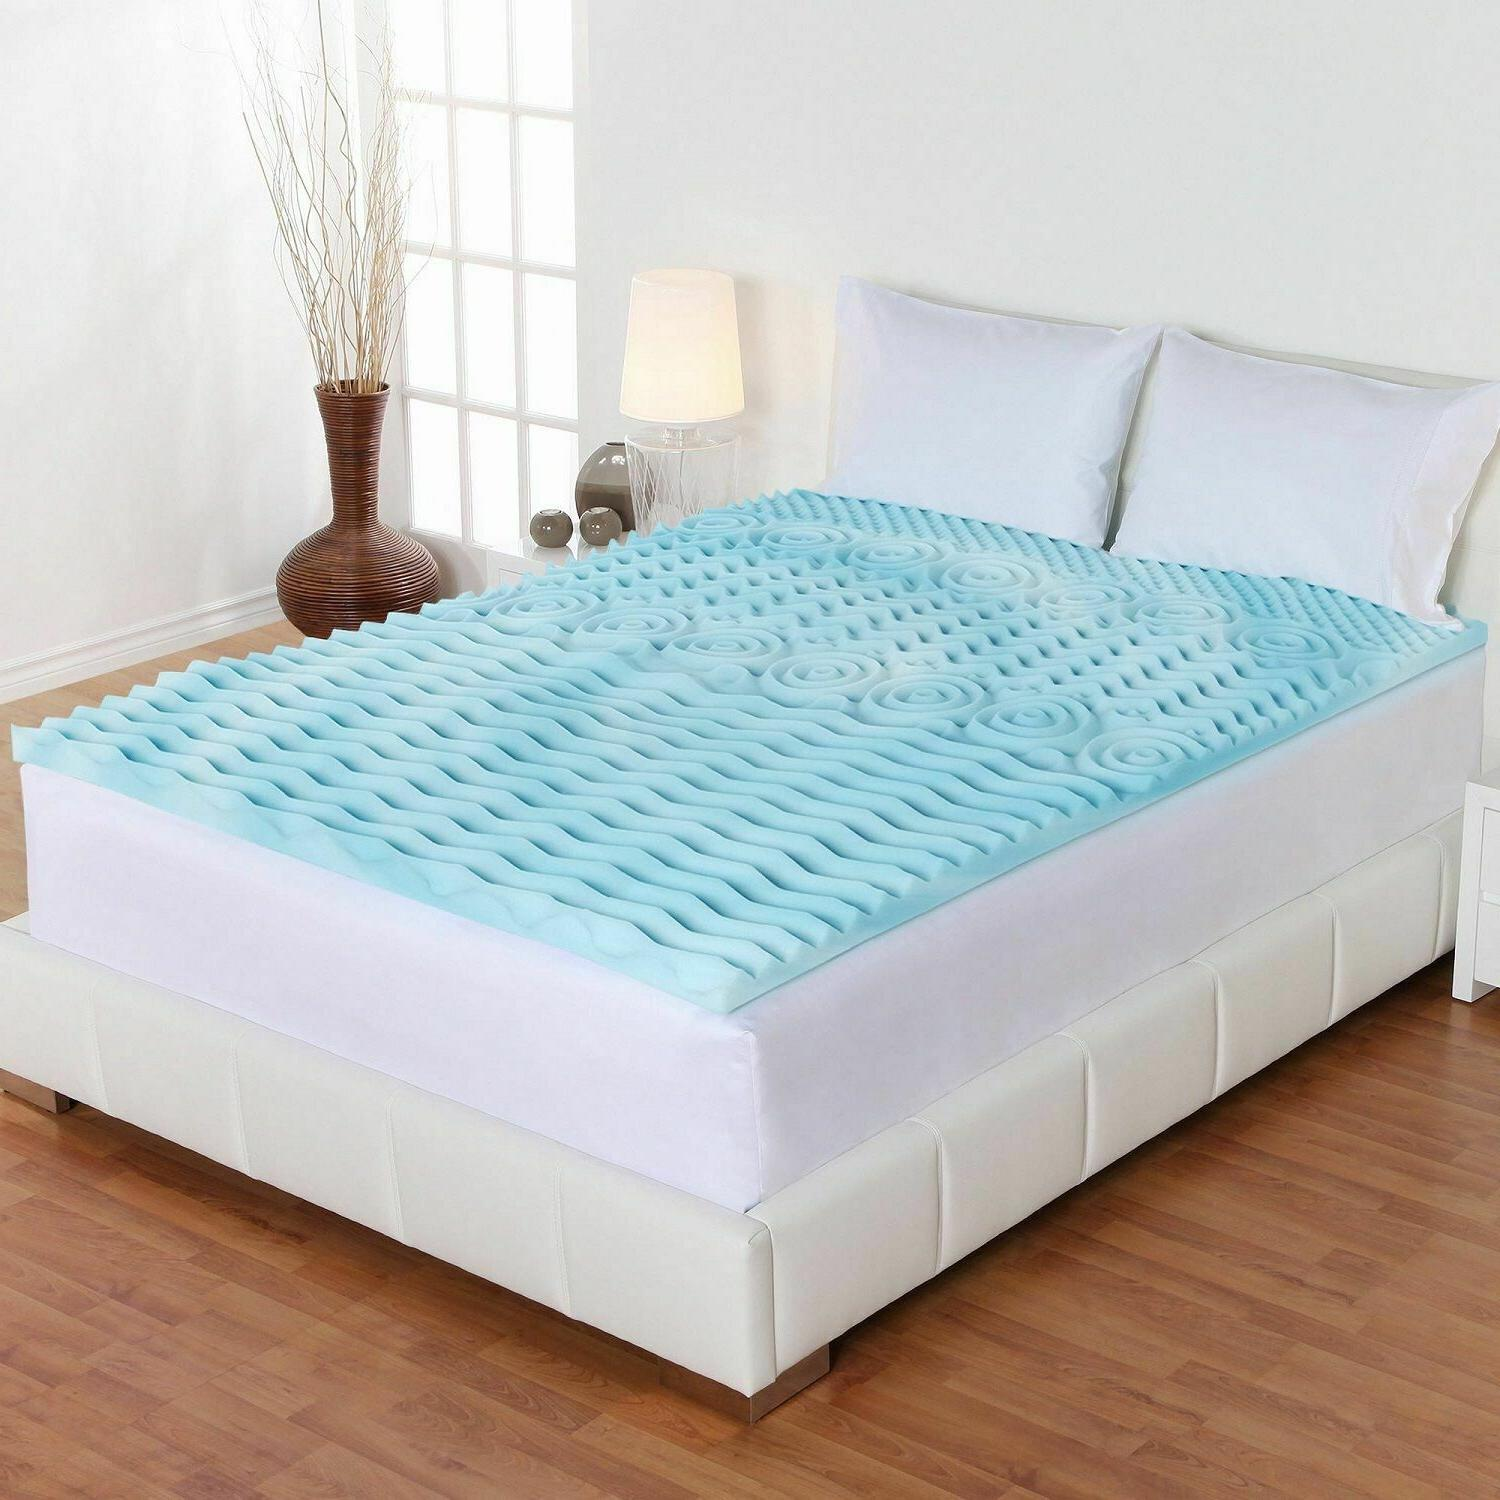 "Mattress 5 2"" Pad Sleep Back Support"